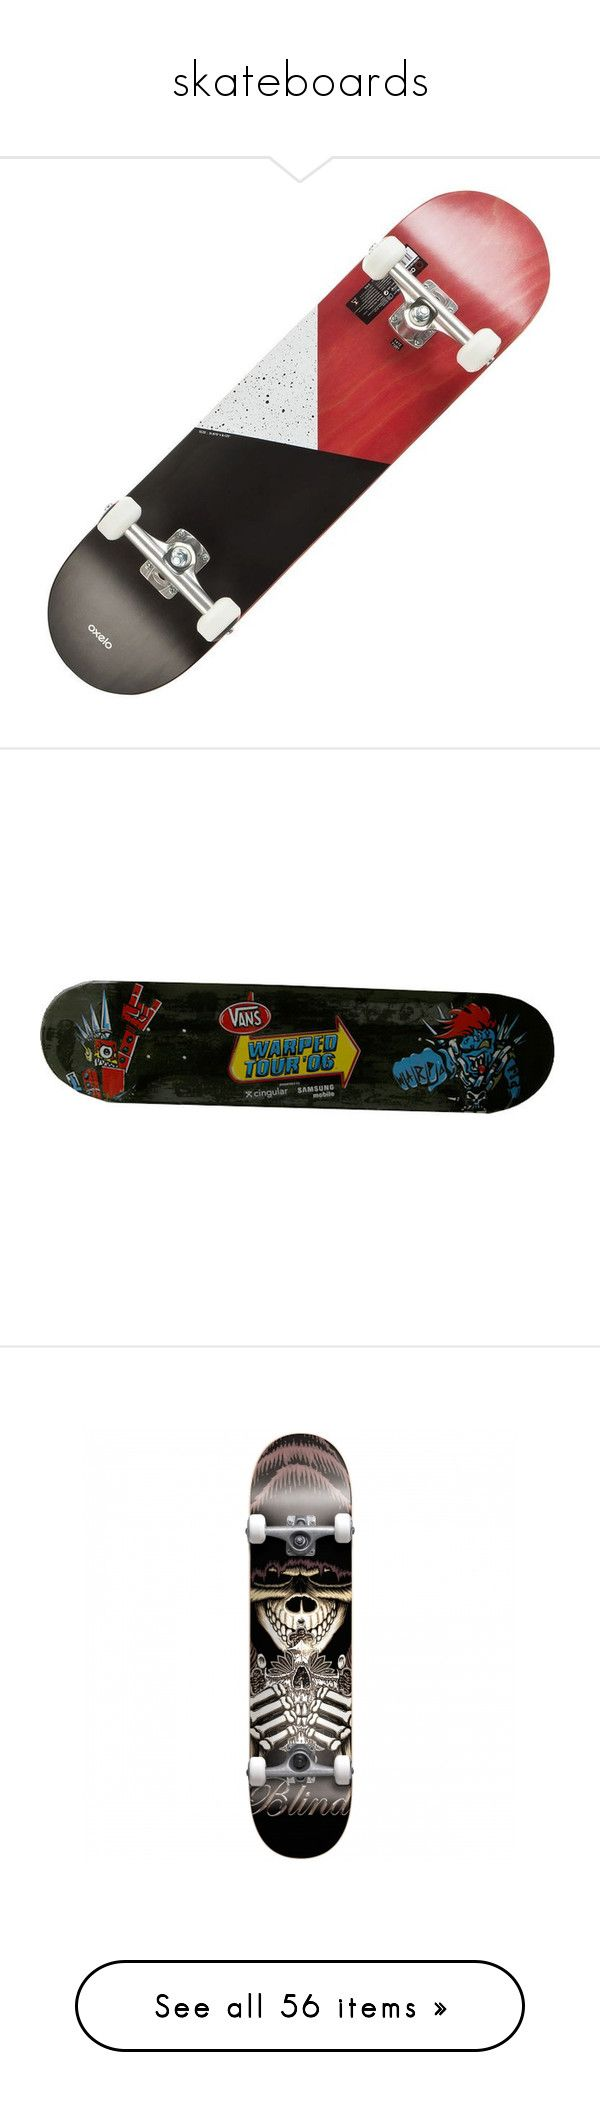 """skateboards"" by briana-is-hungry ❤ liked on Polyvore featuring skateboard, skateboards, accessories, home, filler, misc, other, boards, fillers and skate"